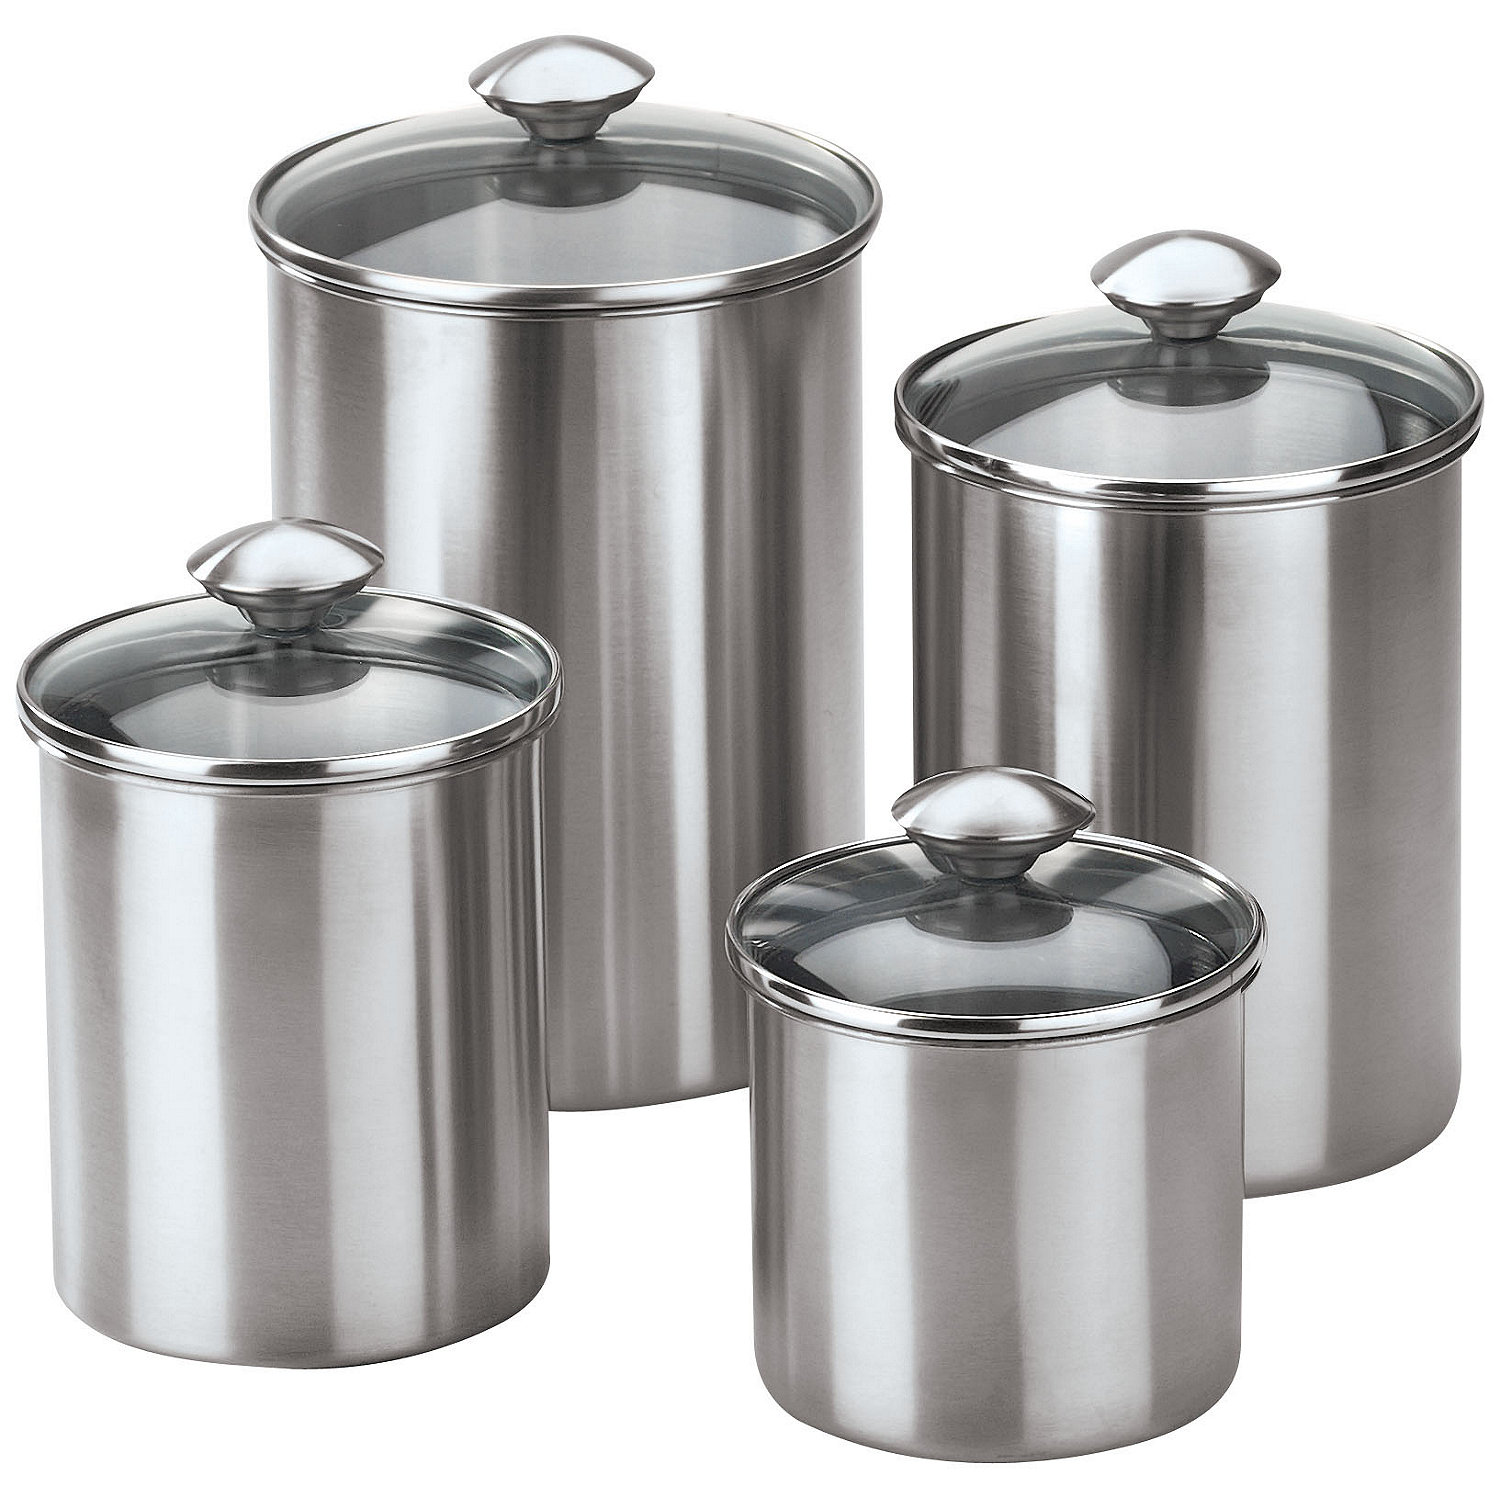 4 Piece Stainless Steel Modern Kitchen Canister Set